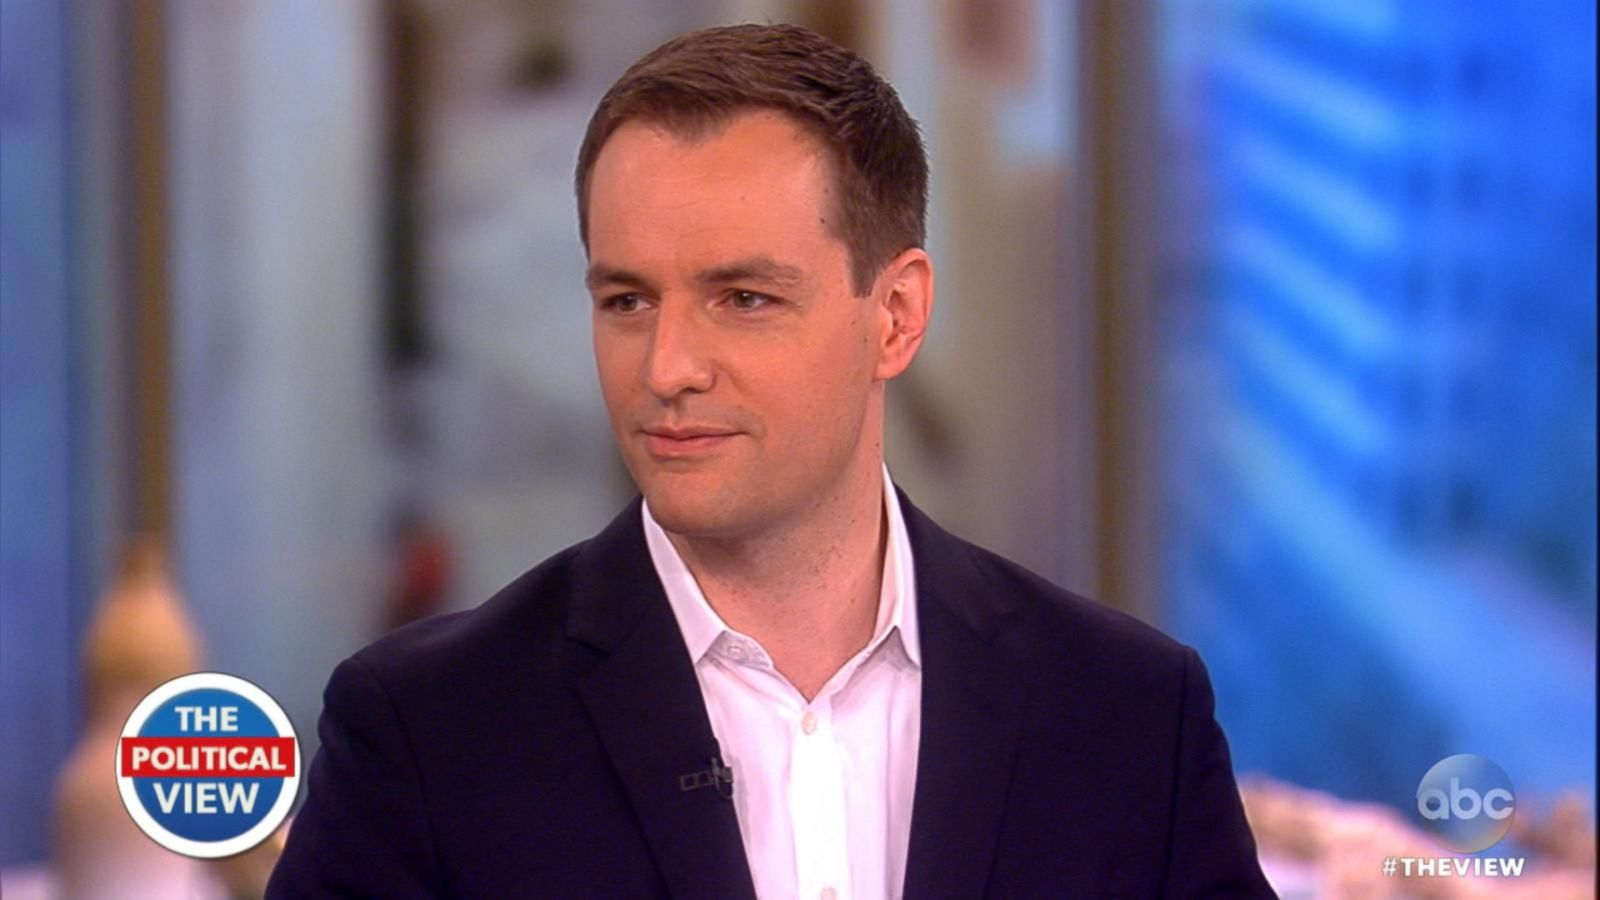 VIDEO: Hillary Clinton's Campaign Manager Talks 1st Presidential Debate